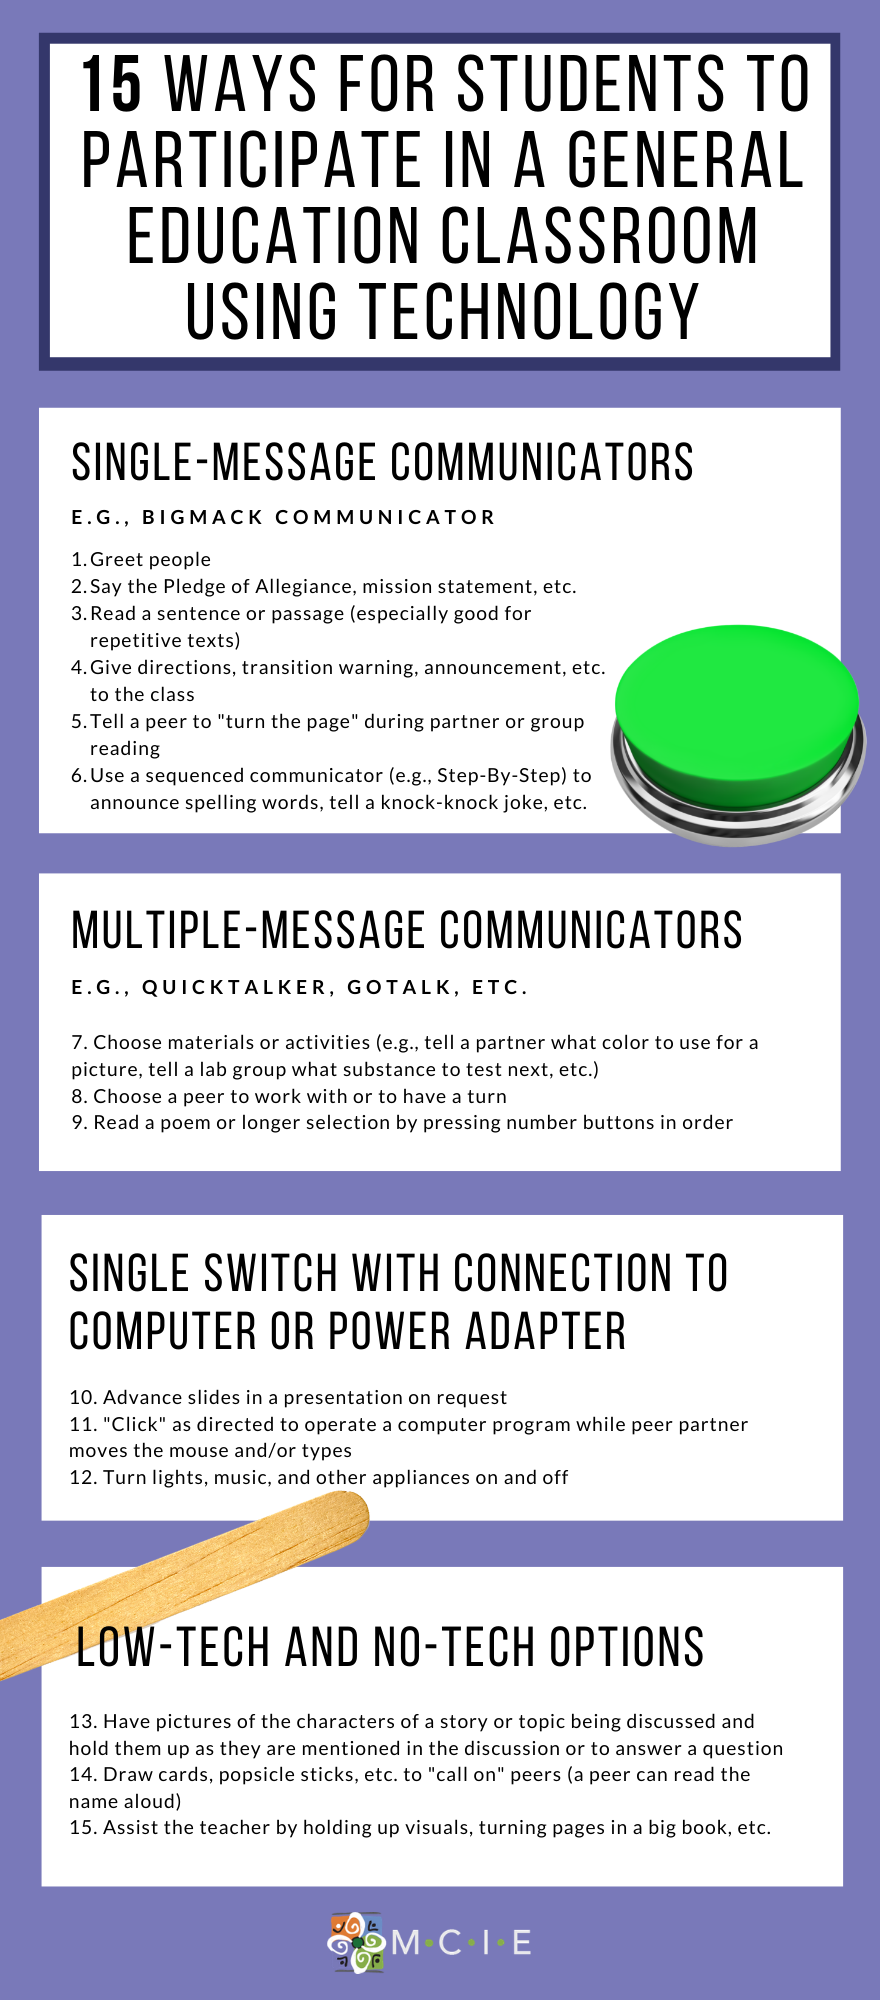 Infographic of 15 Ways for Students to Participate in a General Education Classroom Using Technology